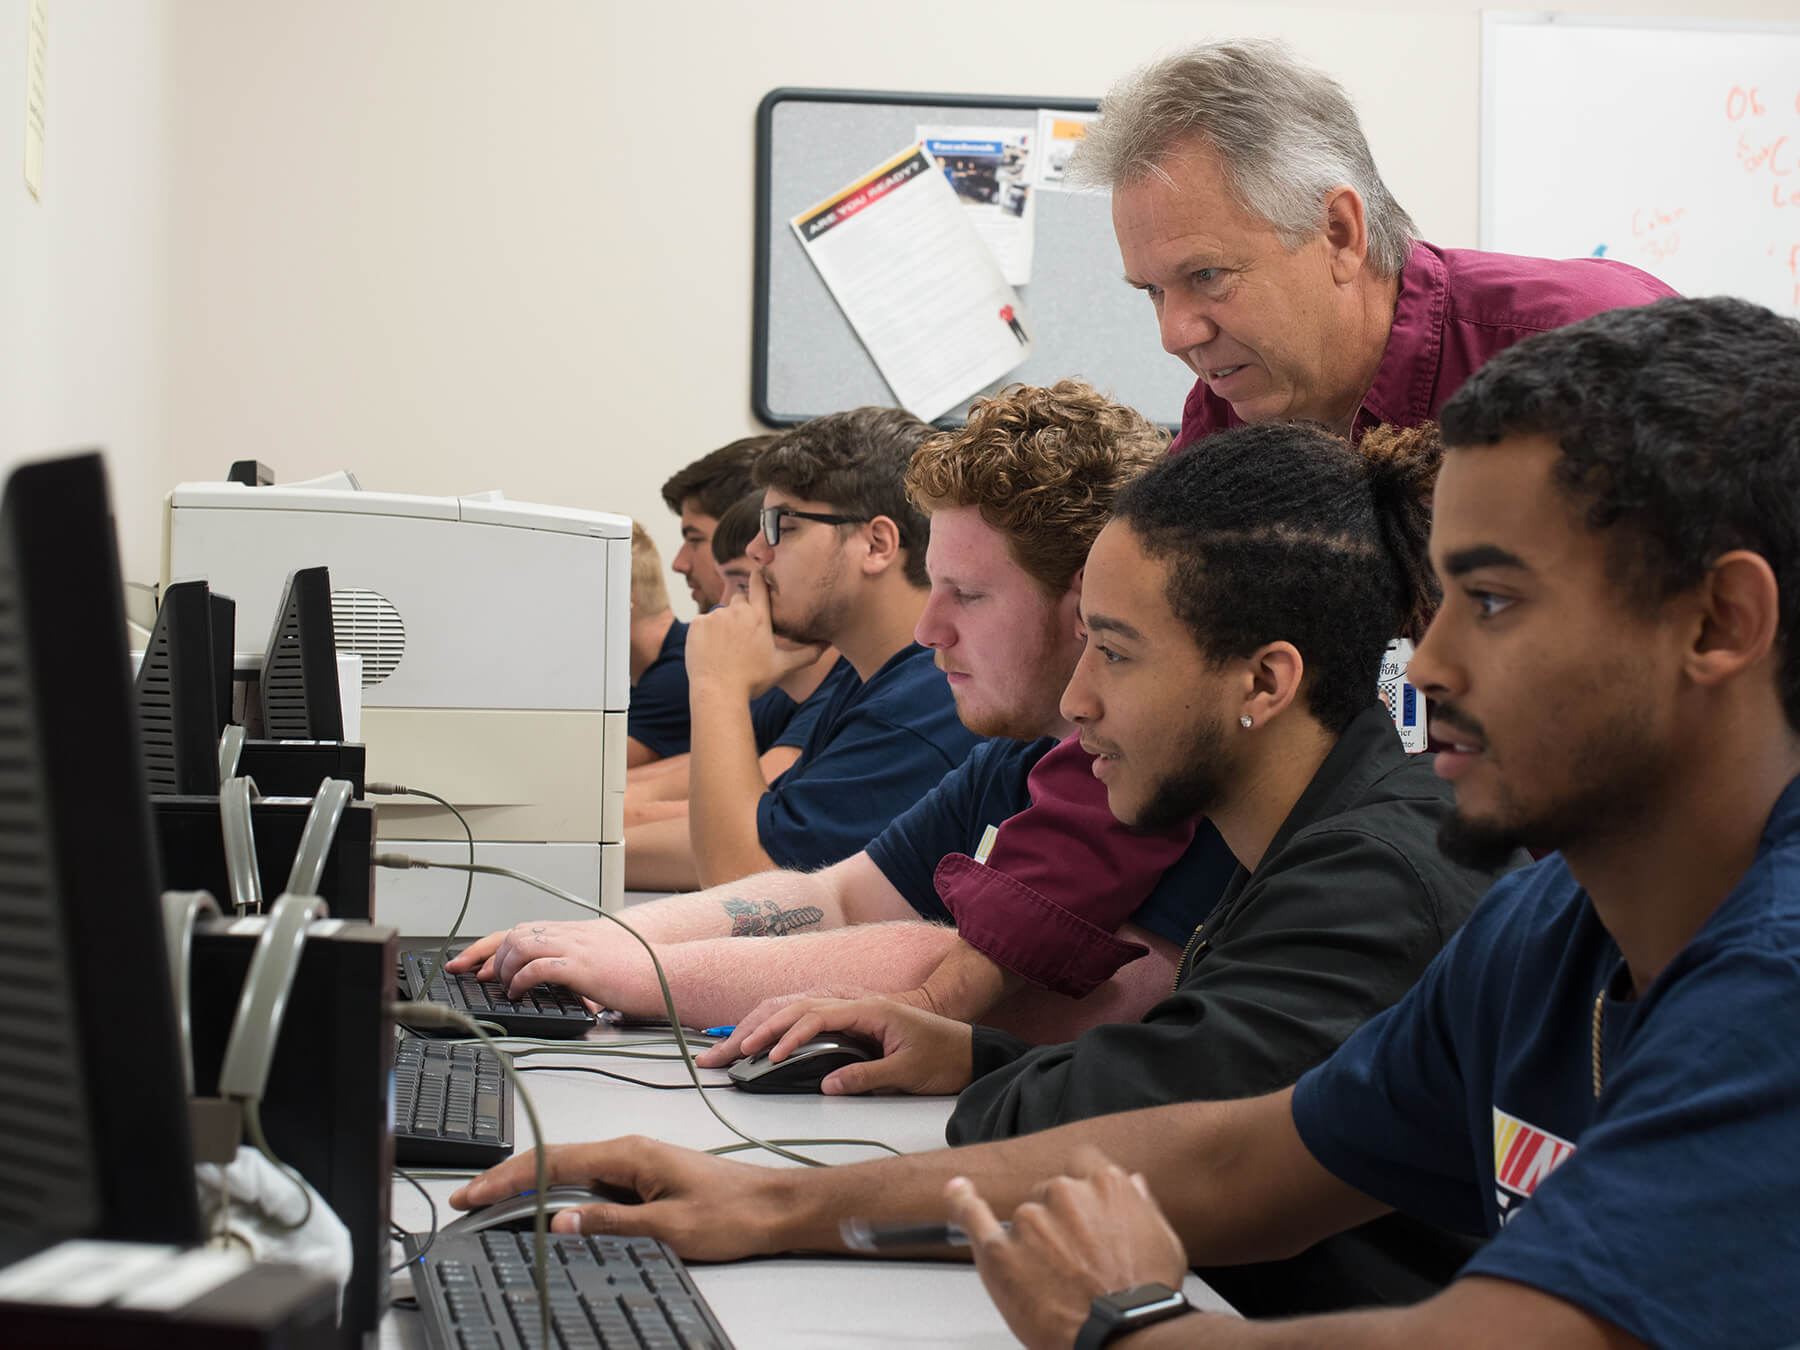 Instructor helping students in the LRC classroom at Mooresville campus